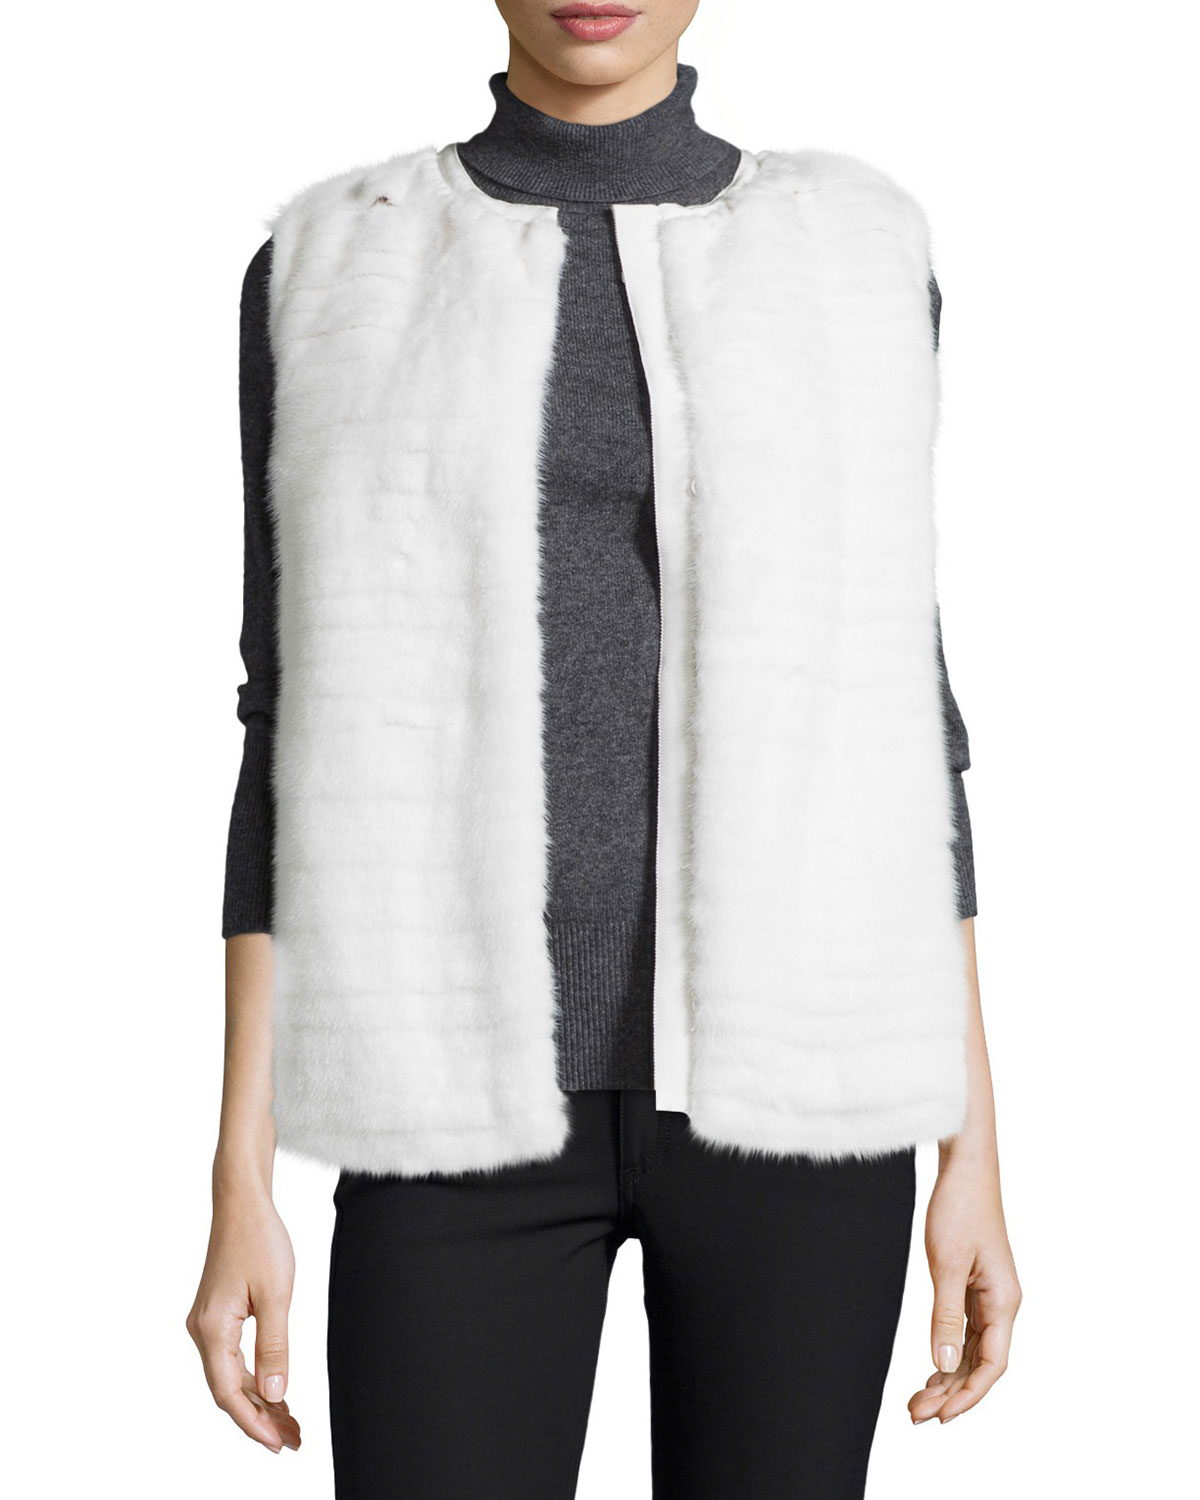 Lyst - Moncler Mink Fur Vest W quilted Back in White 9f269da61e65